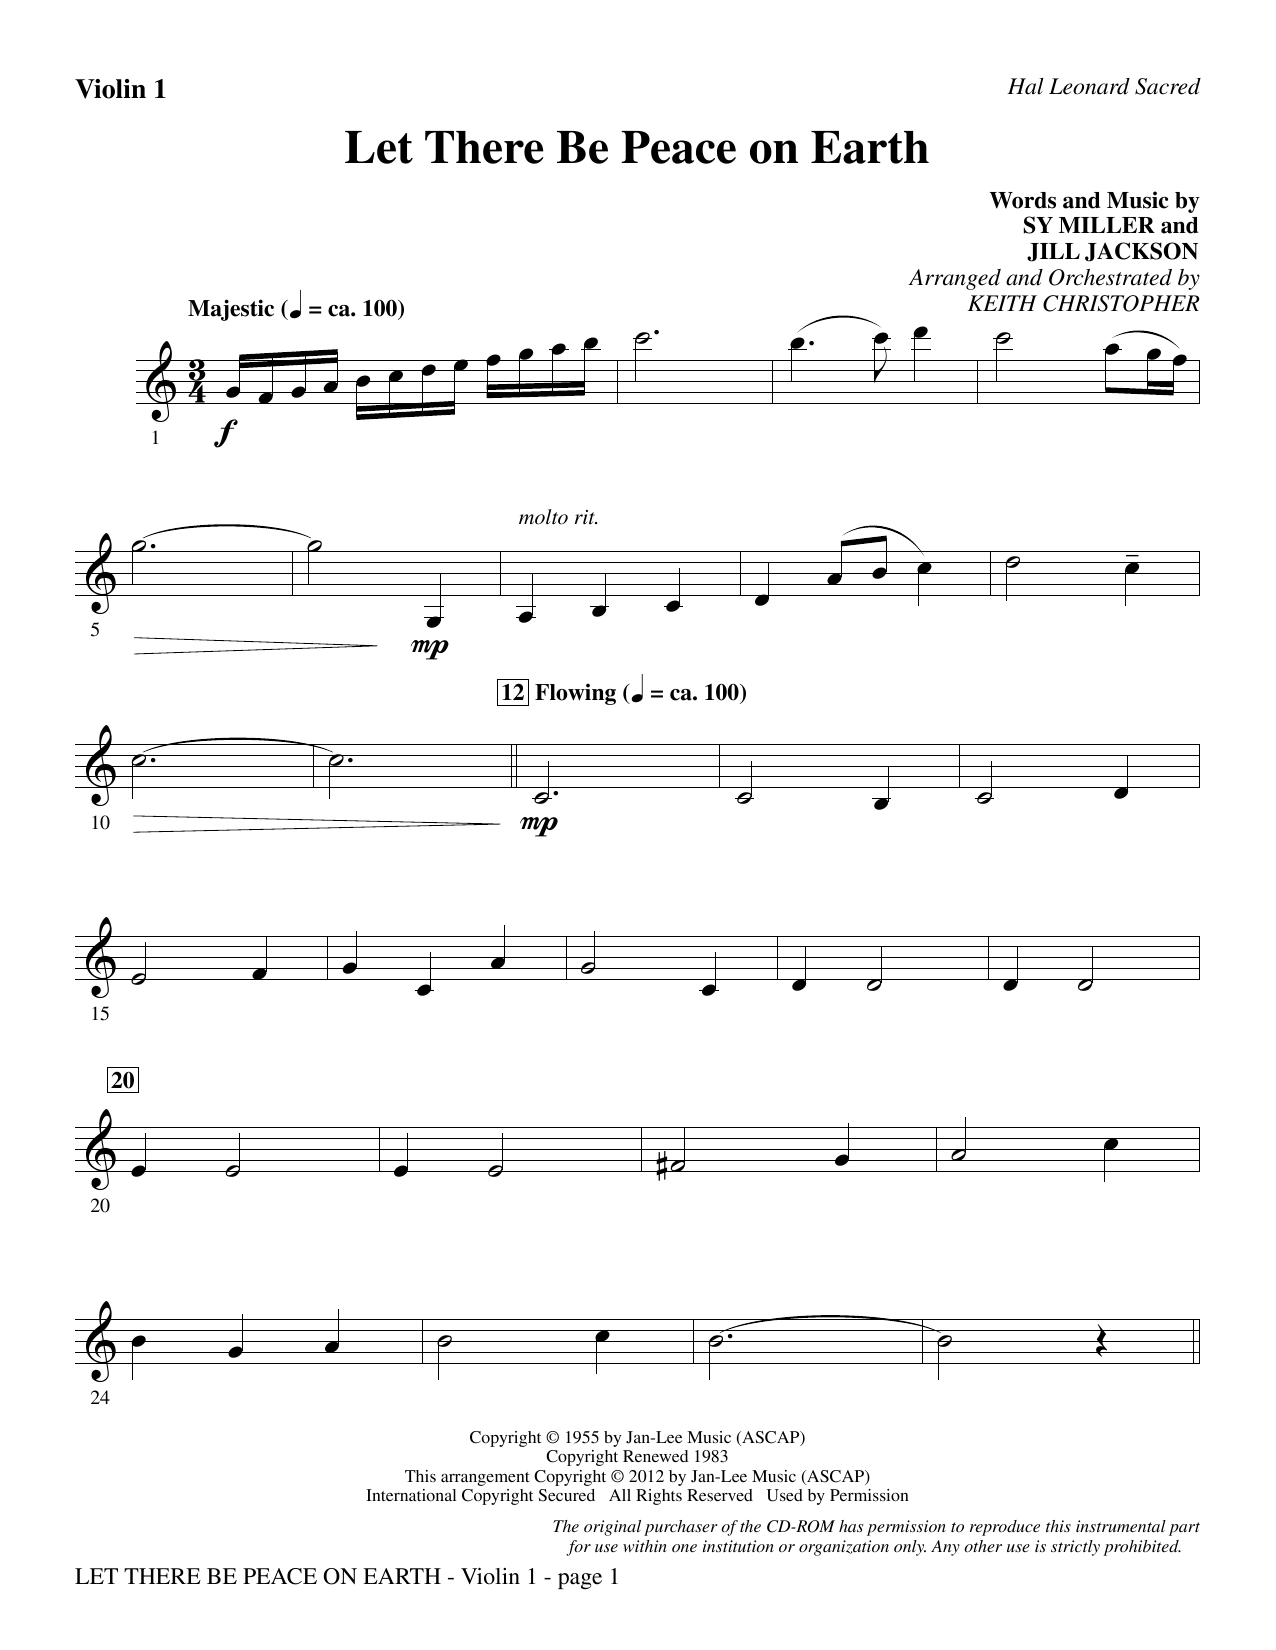 Let There Be Peace On Earth - Violin 1 Sheet Music